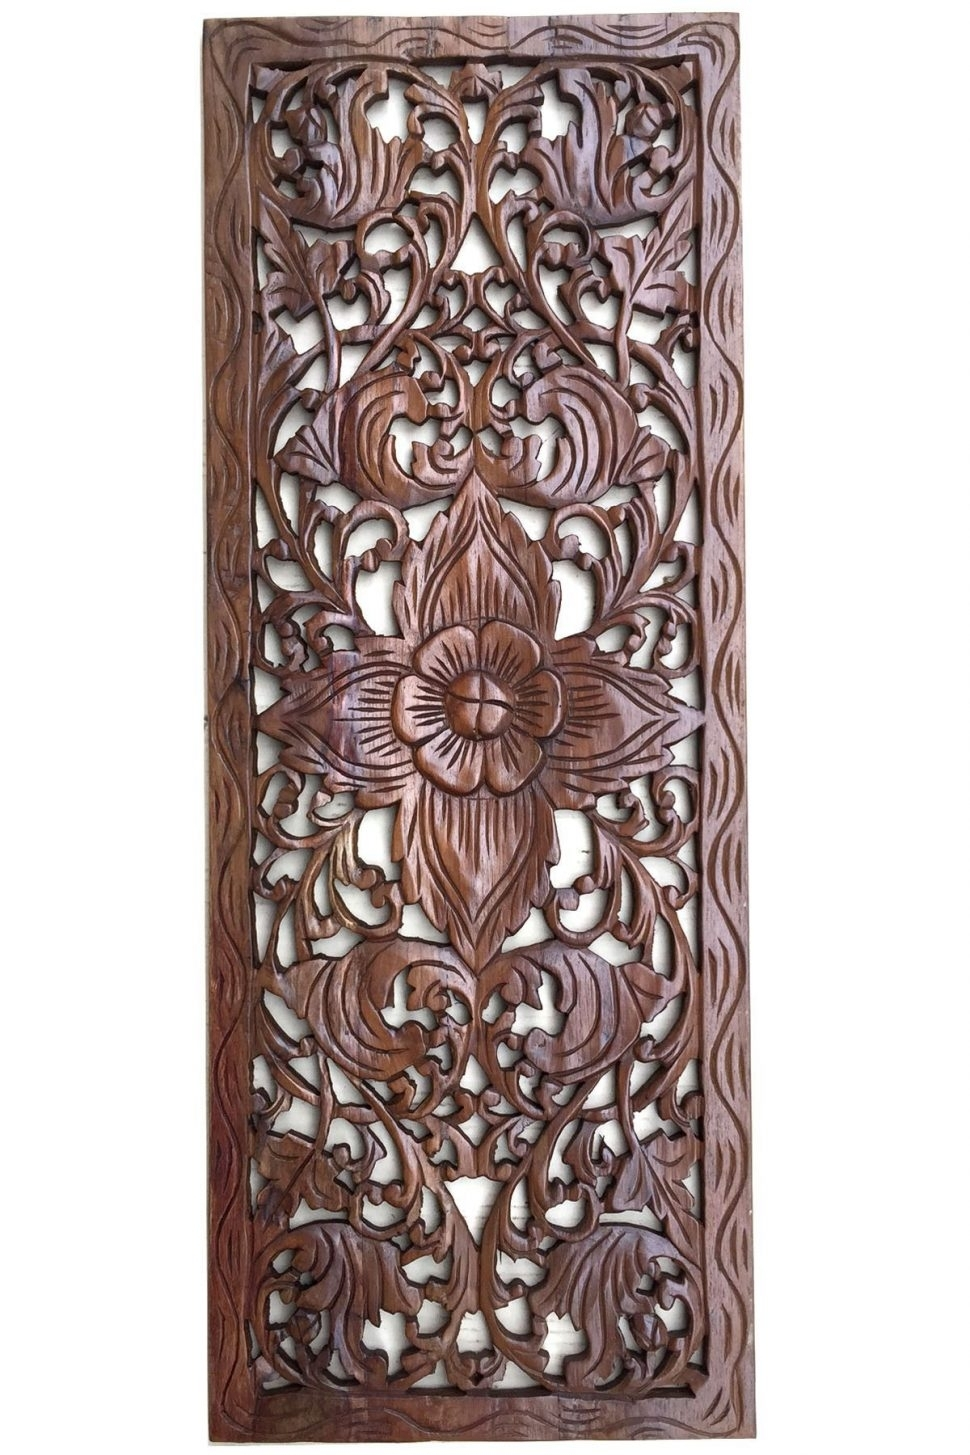 Carved Wood Wall Art India Interior Carved Wood Wall Decor White intended for Carved Wood Wall Art (Image 7 of 20)